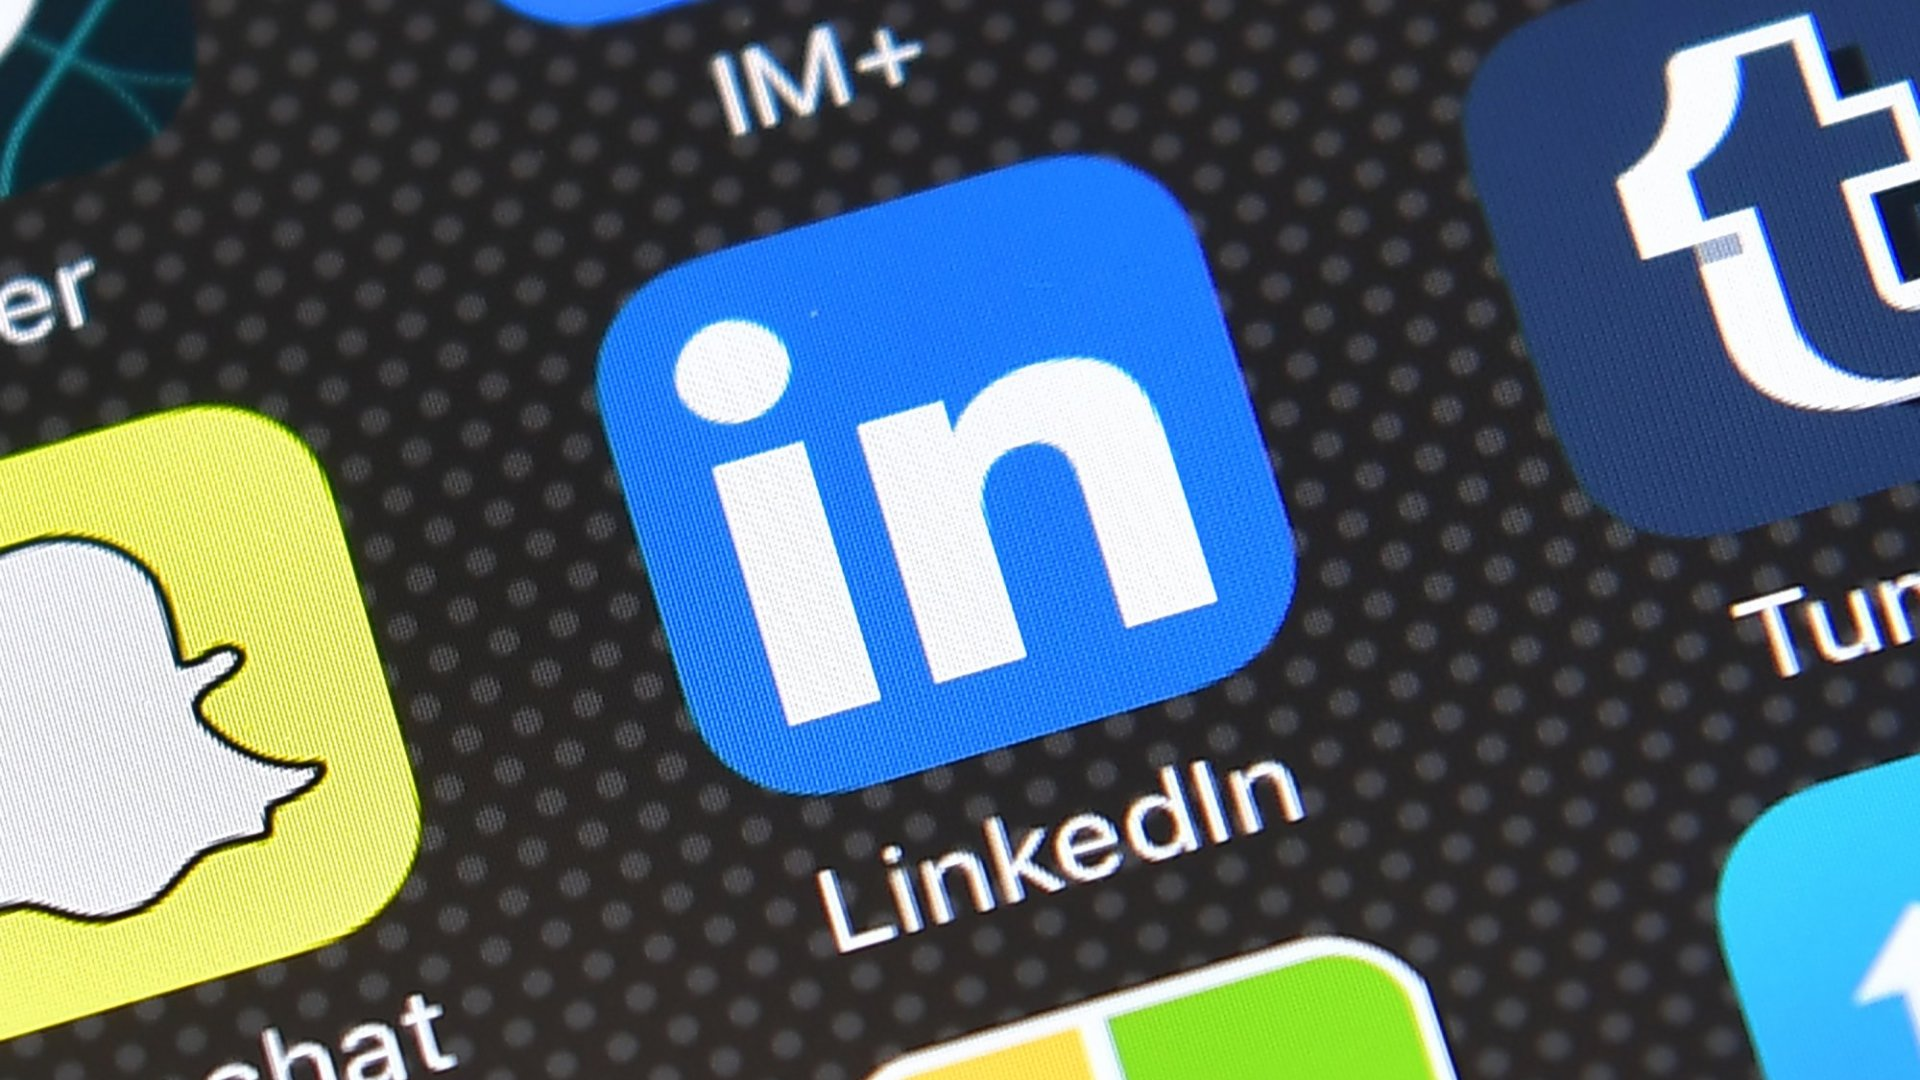 How to Improve Your LinkedIn Profile (According to a LinkedIn Designer)